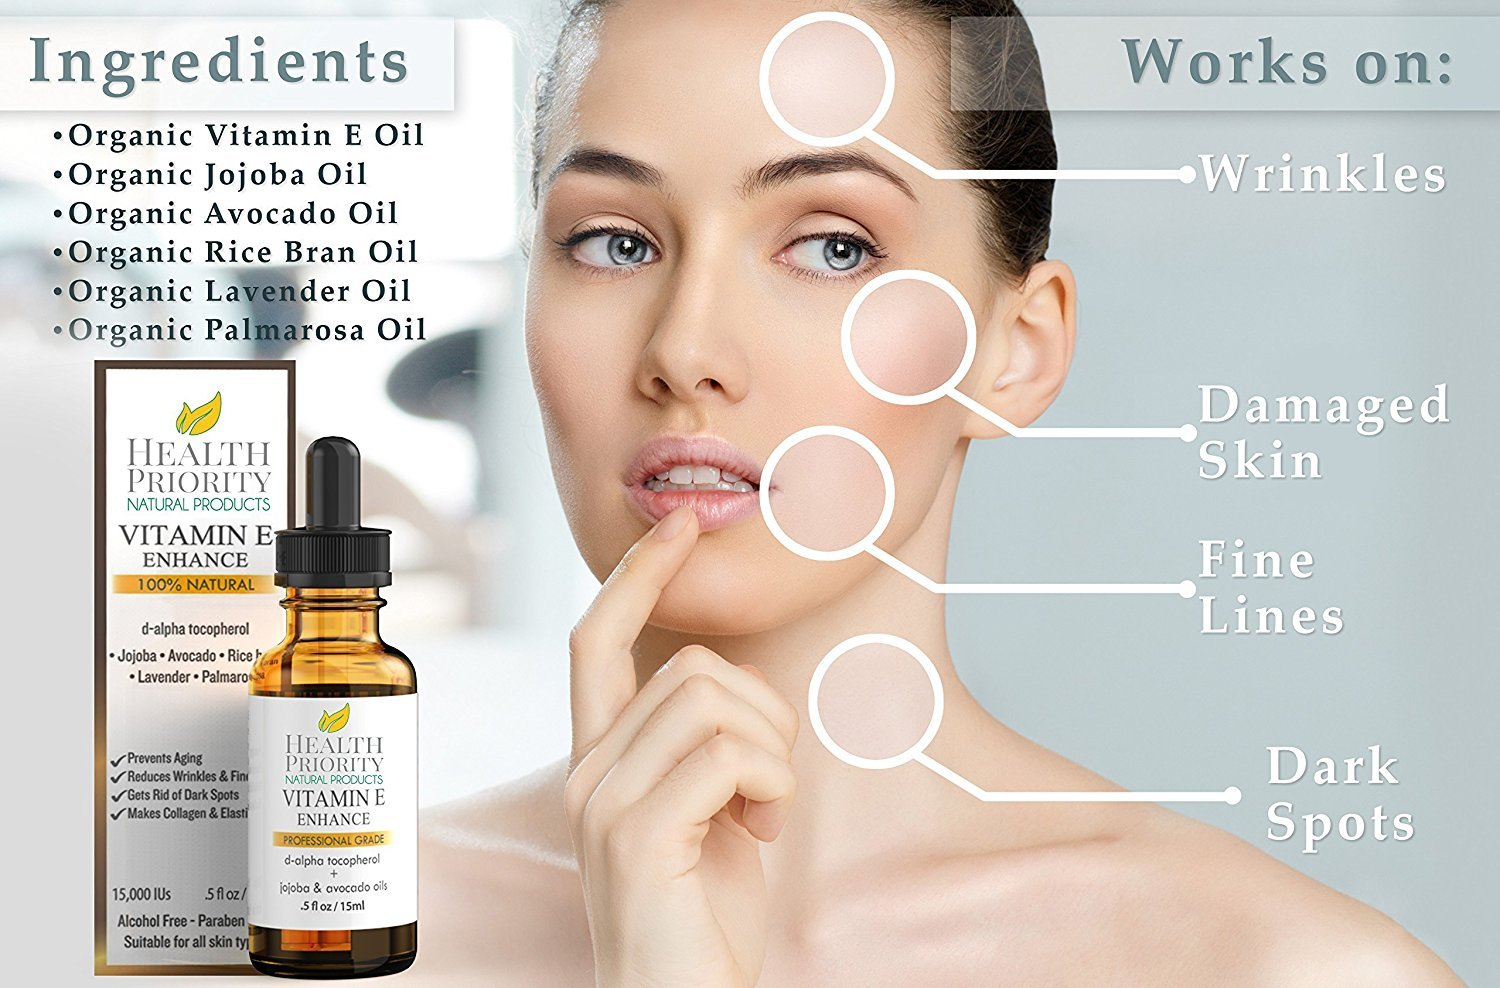 100% All Natural & Organic Vitamin E Oil For Your Face & Skin - 15,000/30,000 IU - Reduces Wrinkles, Lightens Dark Spots, Heals Stretch Marks & Surgical Scars. Best Treatment for Hair, Nails, Lips by Health Priority Natural Products (Image #6)